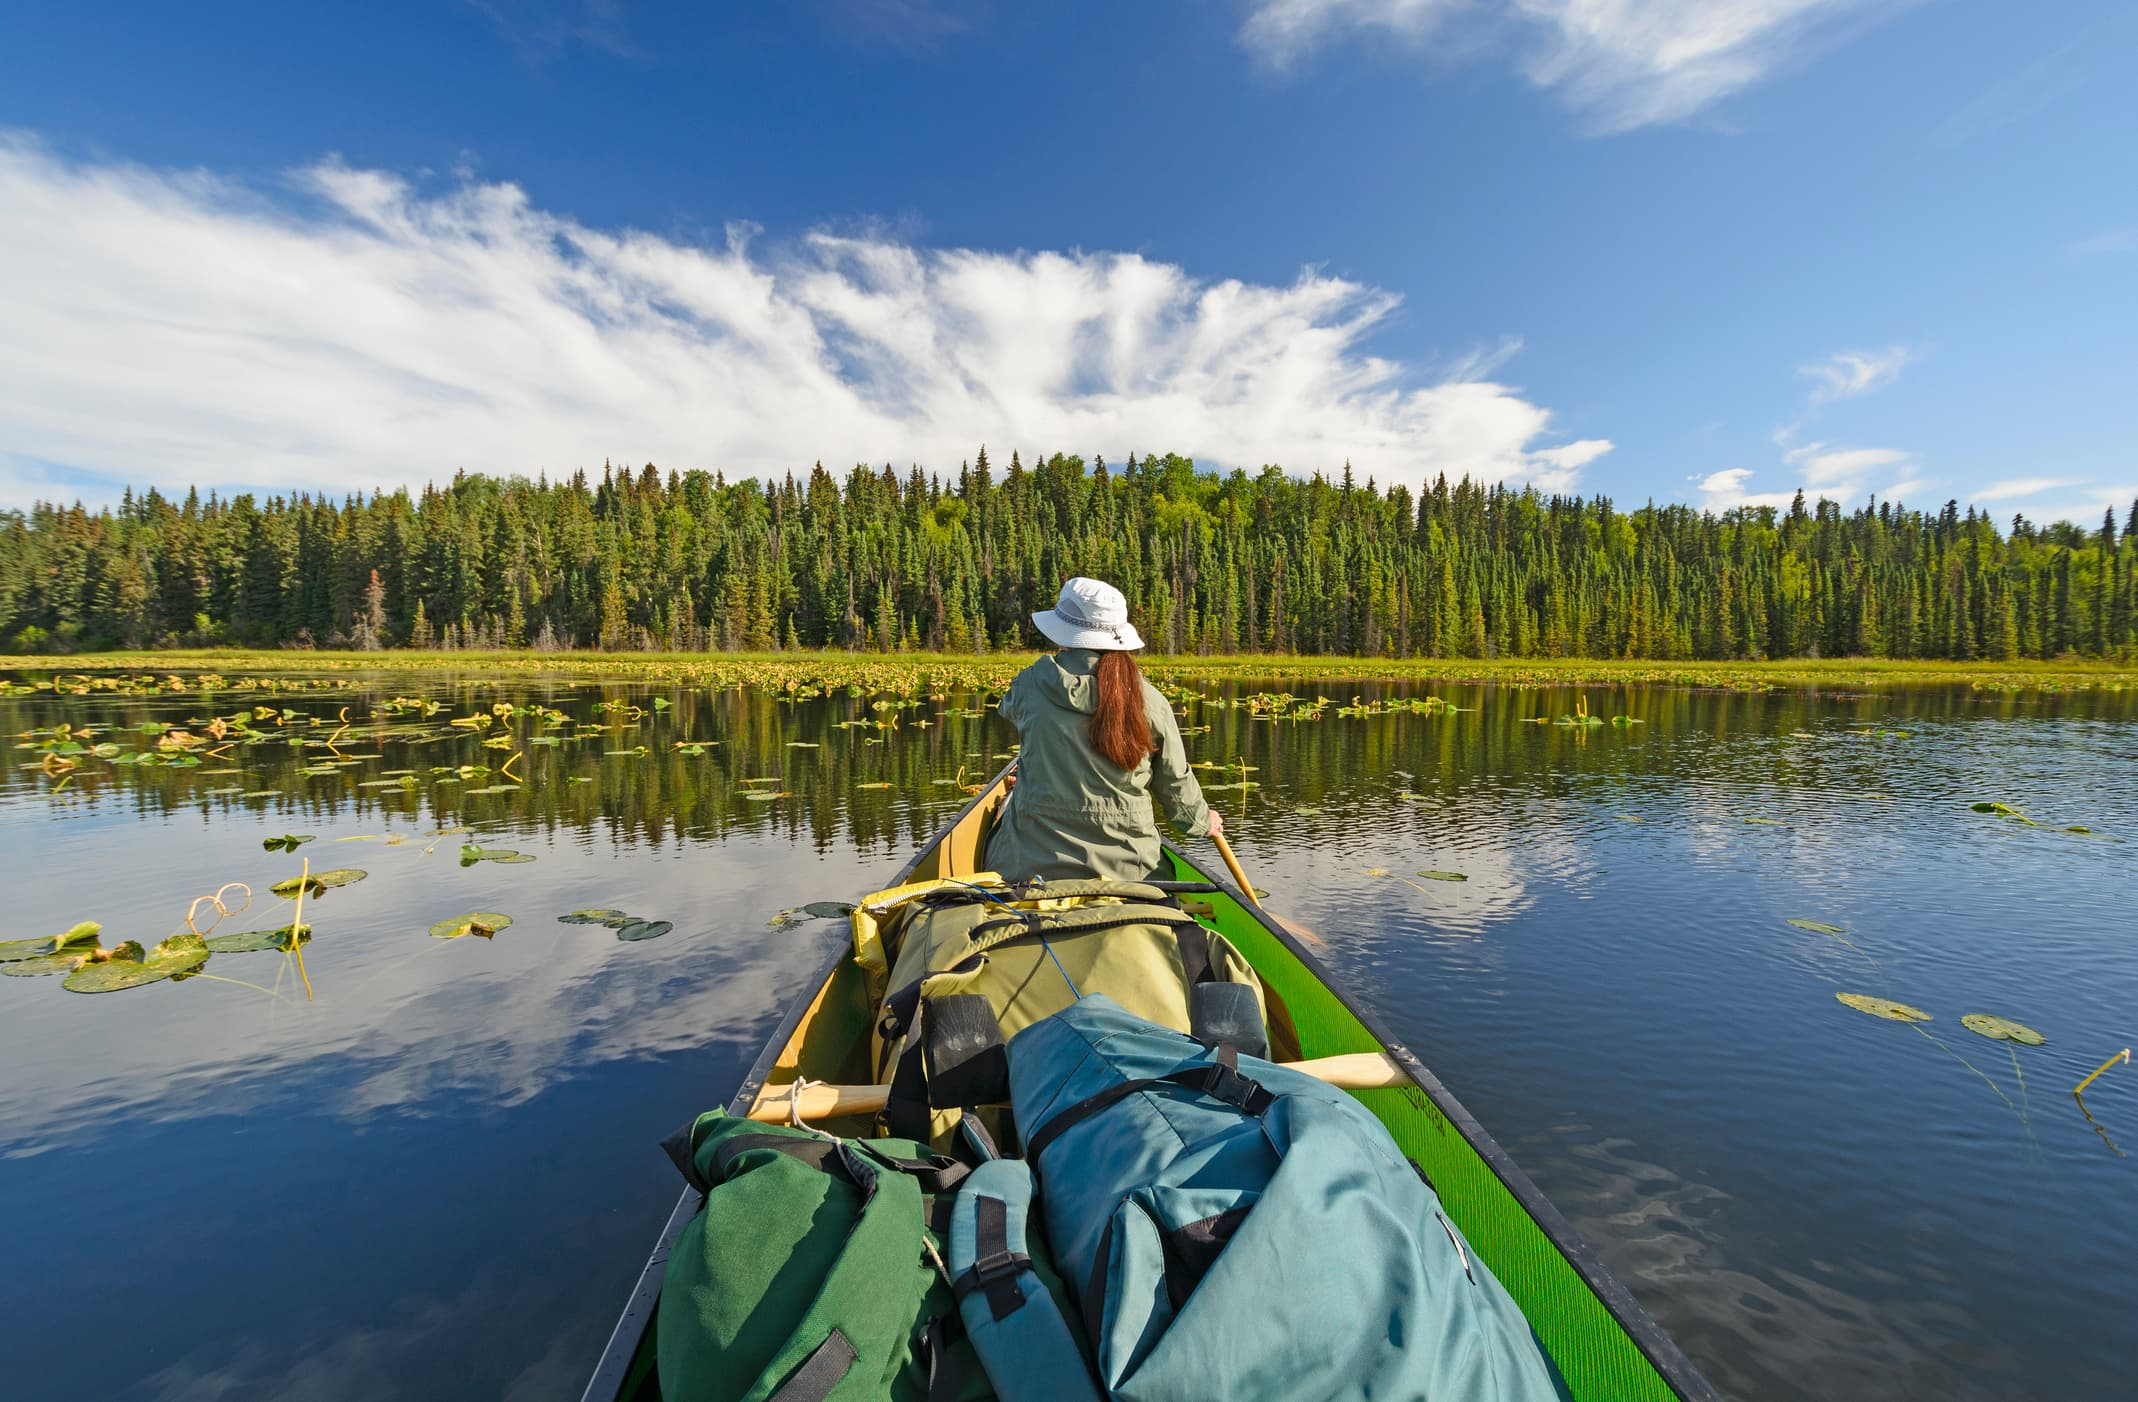 woman in a canoe on the water